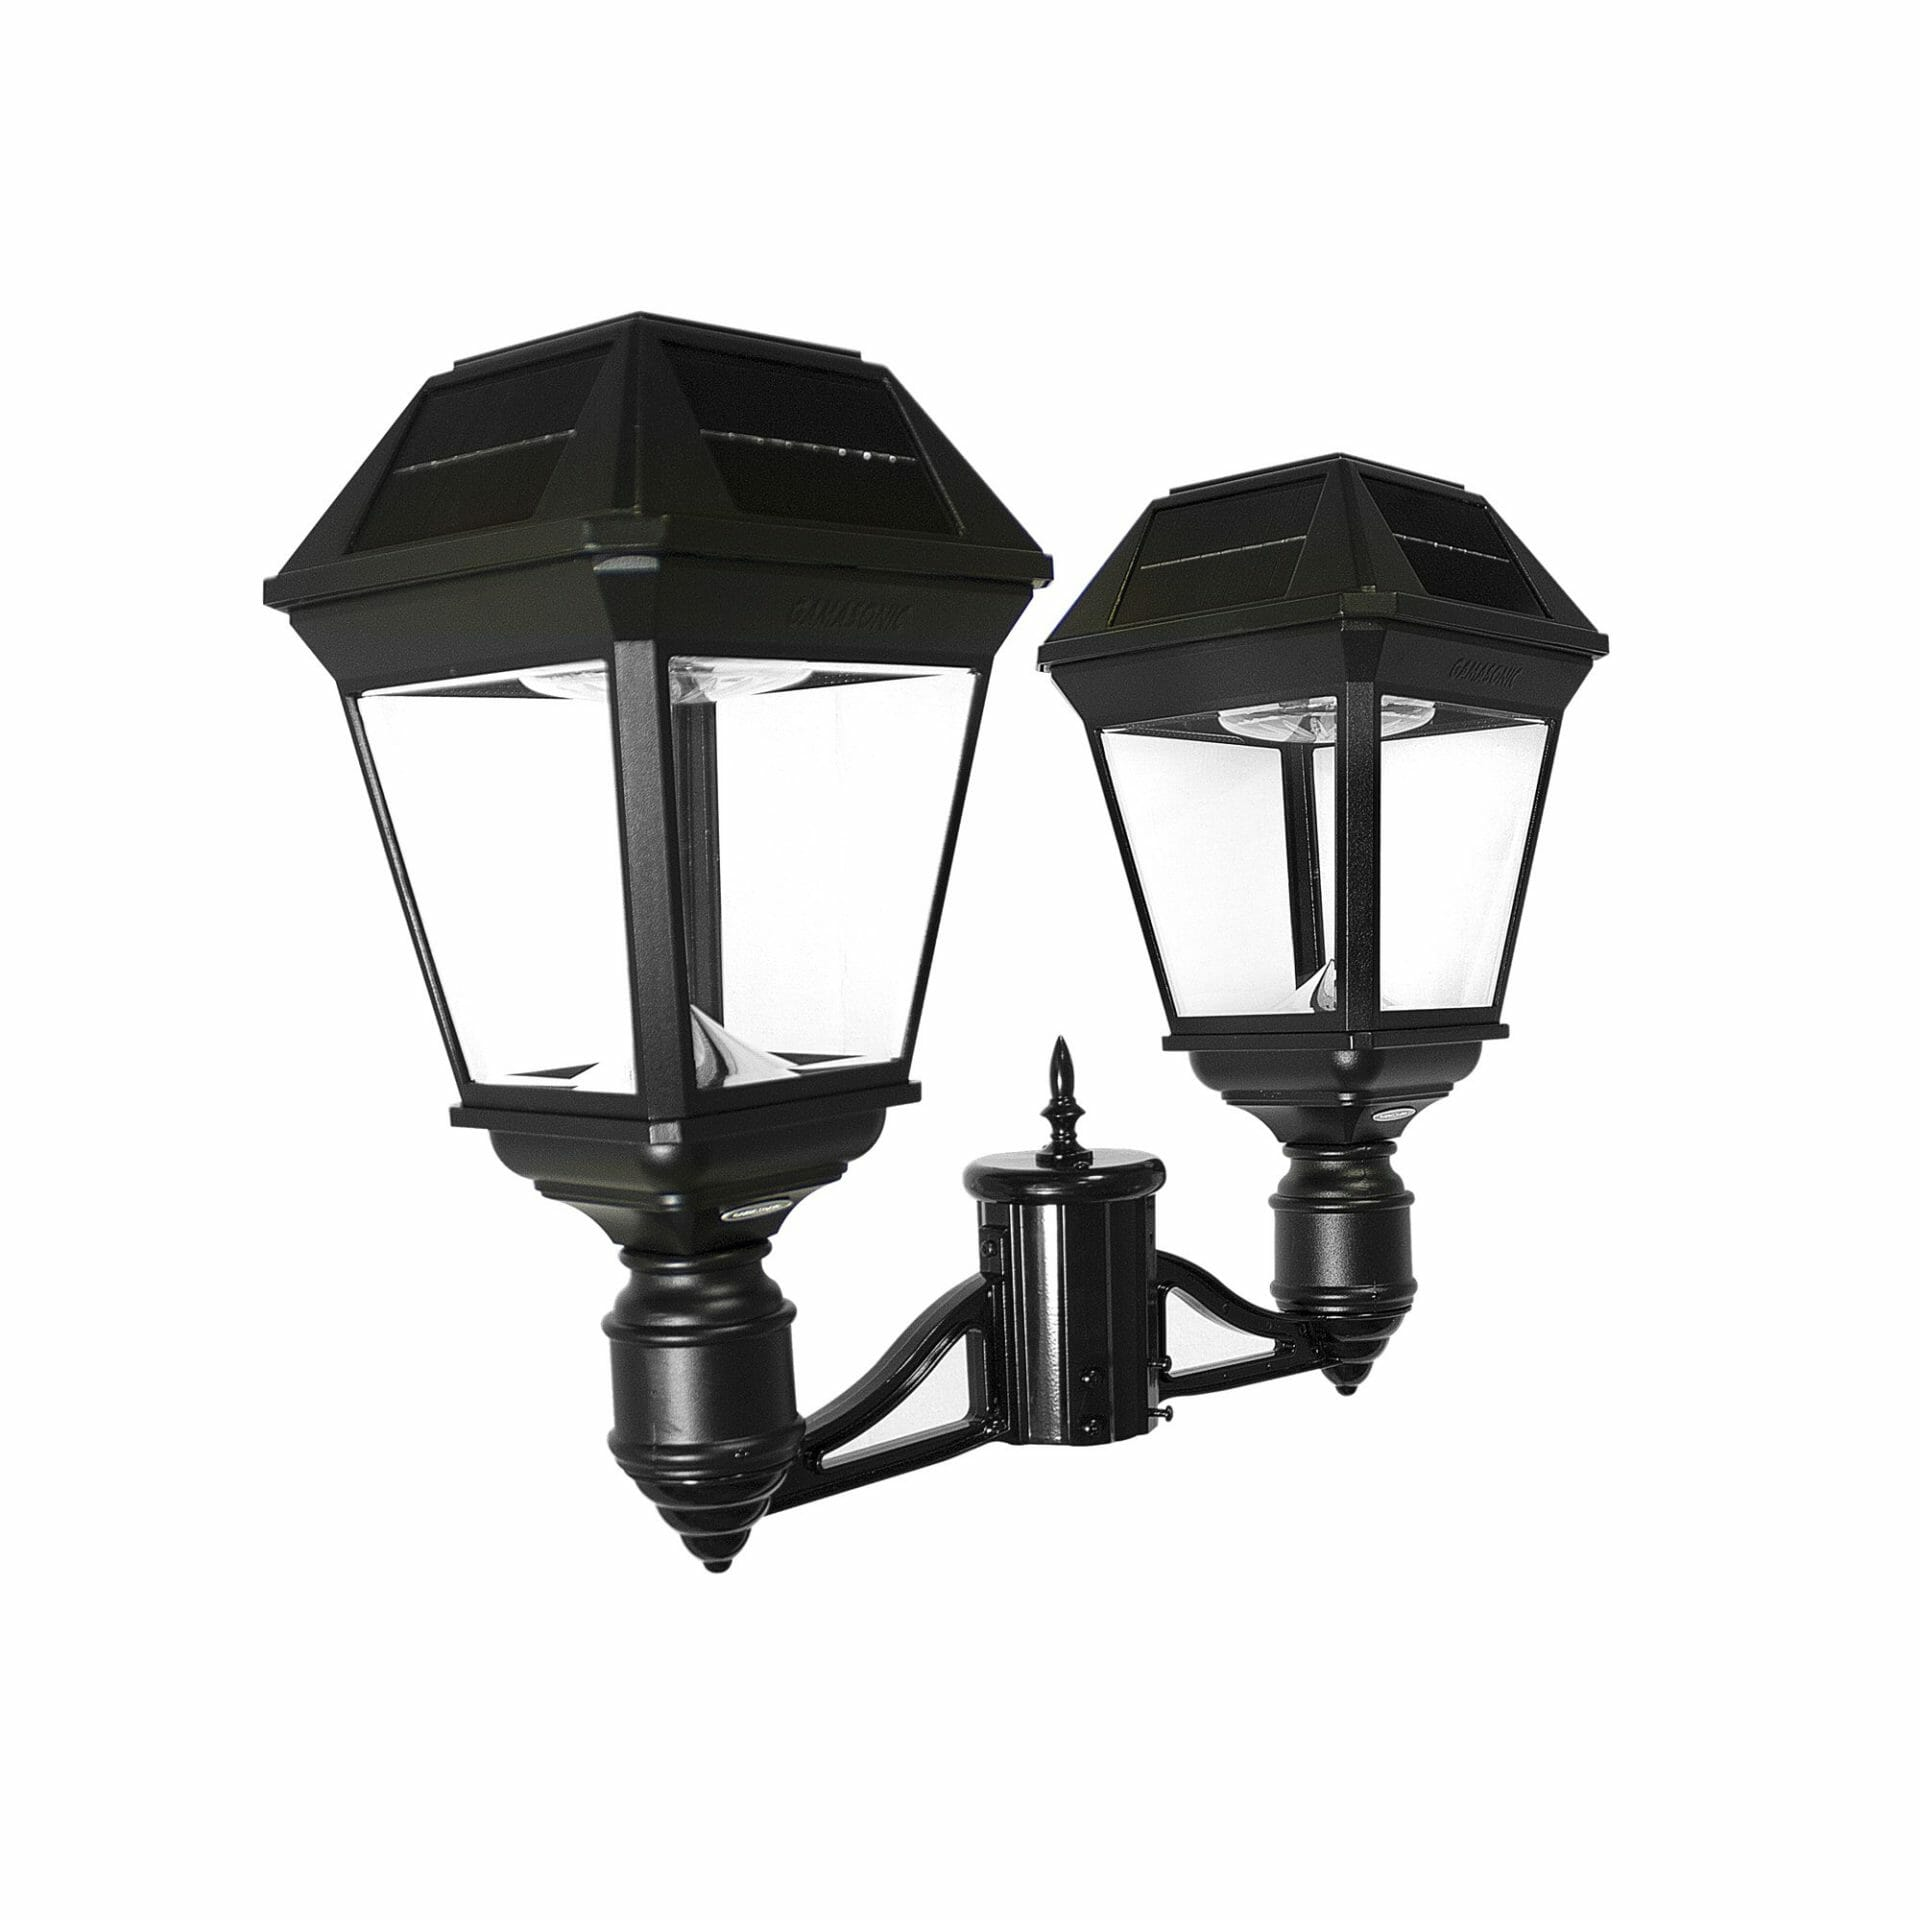 "Imperial III Commercial Solar Double Post Light with Dual Color Temperature and 3"" Fitter 97KF20"